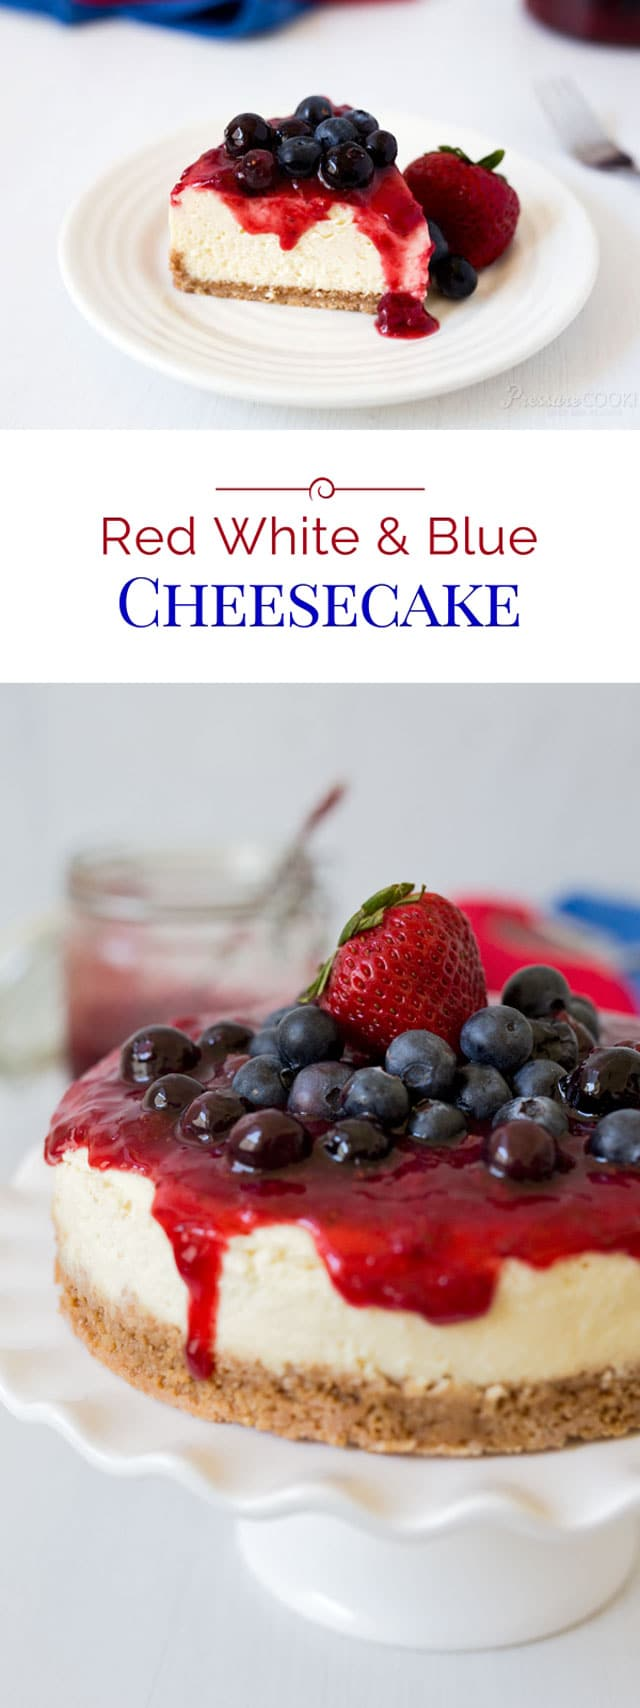 Red White and Blue Cheesecake is the perfect cheesecake recipe to make for a 4th of July dessert. This creamy Instant Pot cheesecake is one of the best pressure cooker cheesecake recipes to make for any patriotic holiday! #pressurecooking #instantpot #cheesecake #4thofJuly #dessert via @PressureCook2da